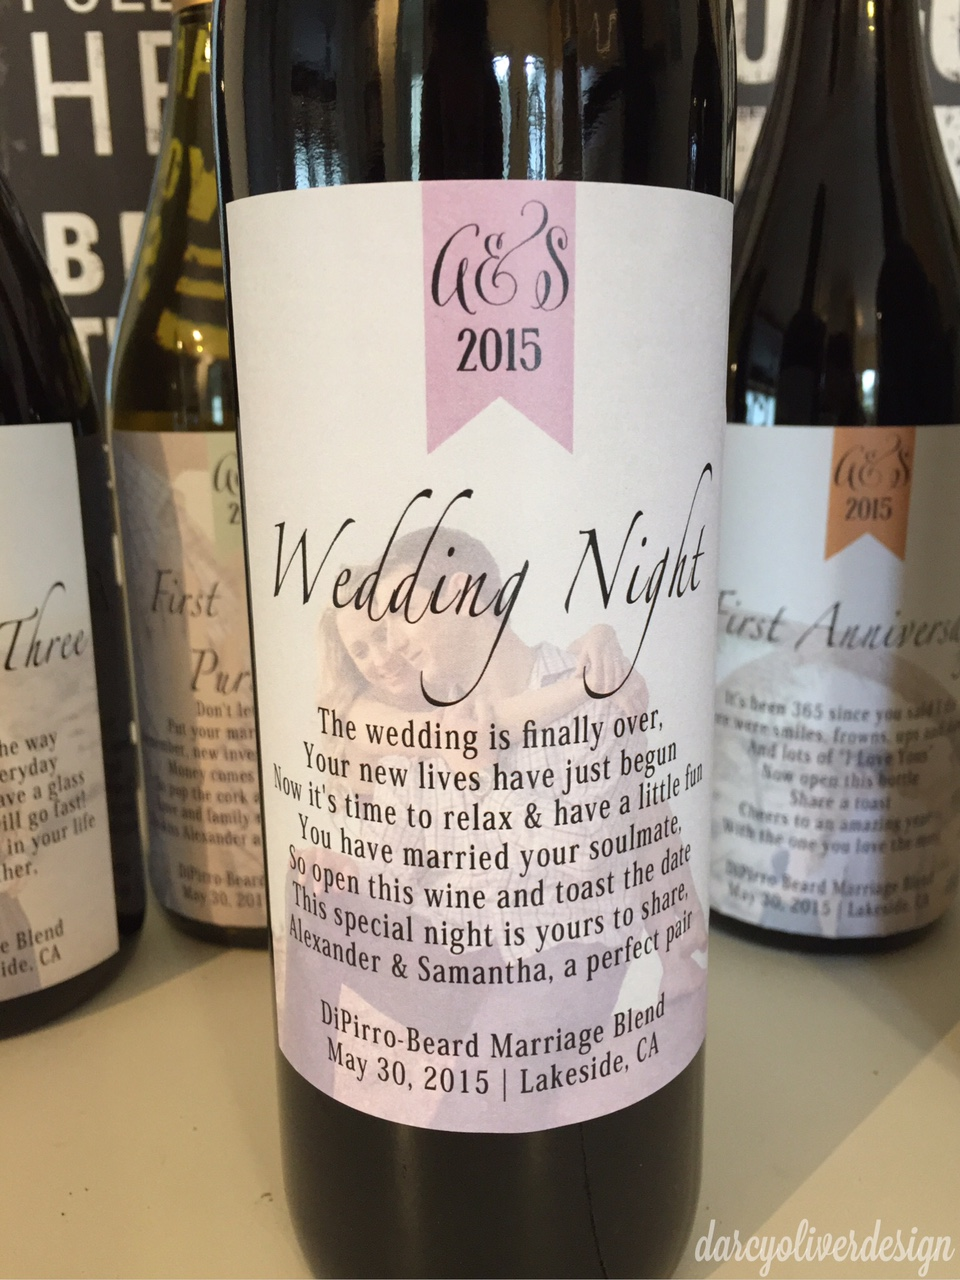 Custom Wine Labels For Wedding Gift : Custom Wine Labels : Wedding or Bridal Shower Gift darcyoliverdesign